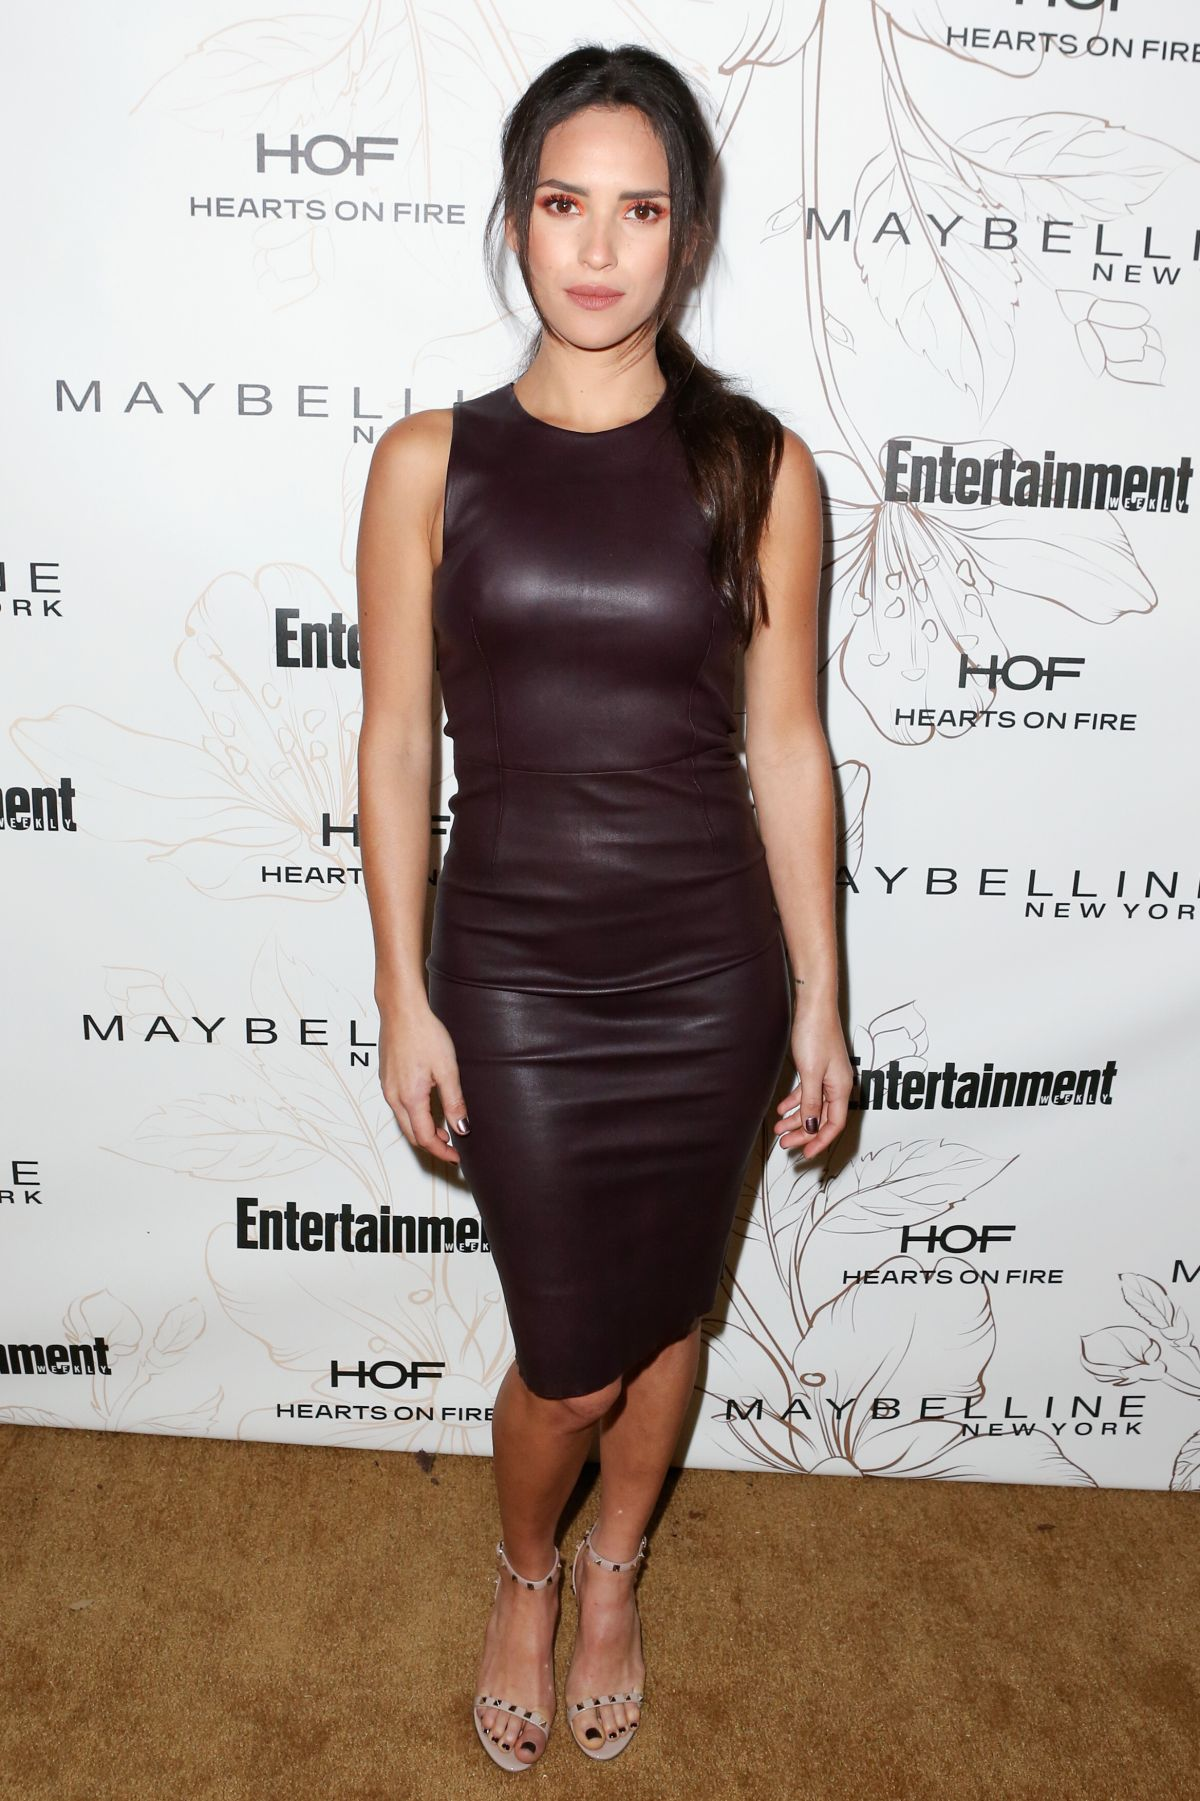 ADRIA ARJONA at Entertainment Weekly Pre-SAG Party in Los ...